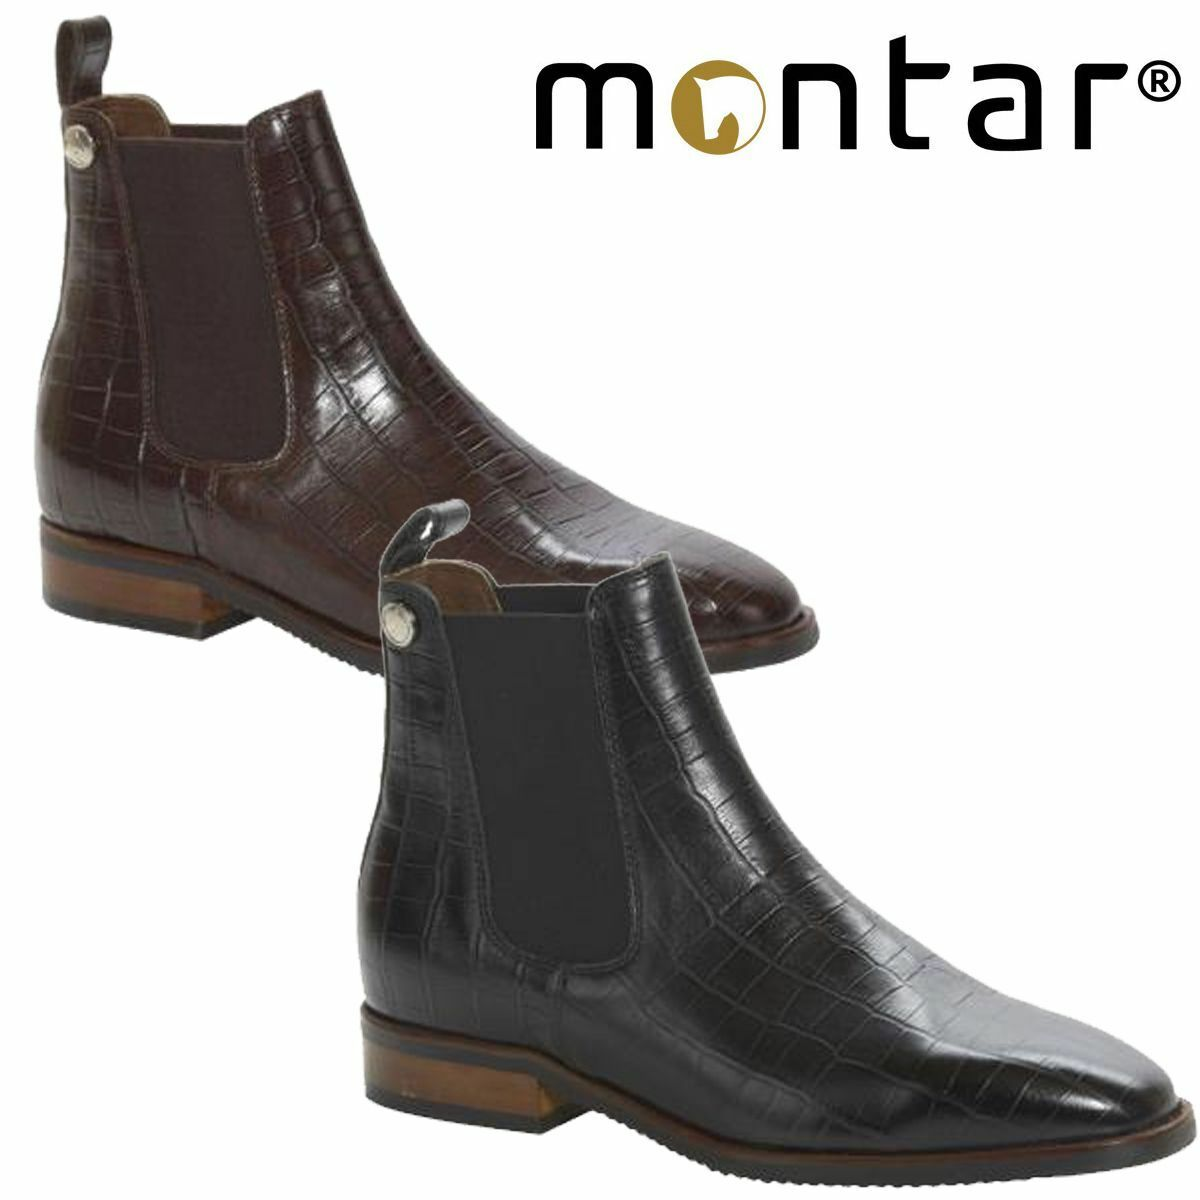 Montar Croco Pull On Jodhpur Boots